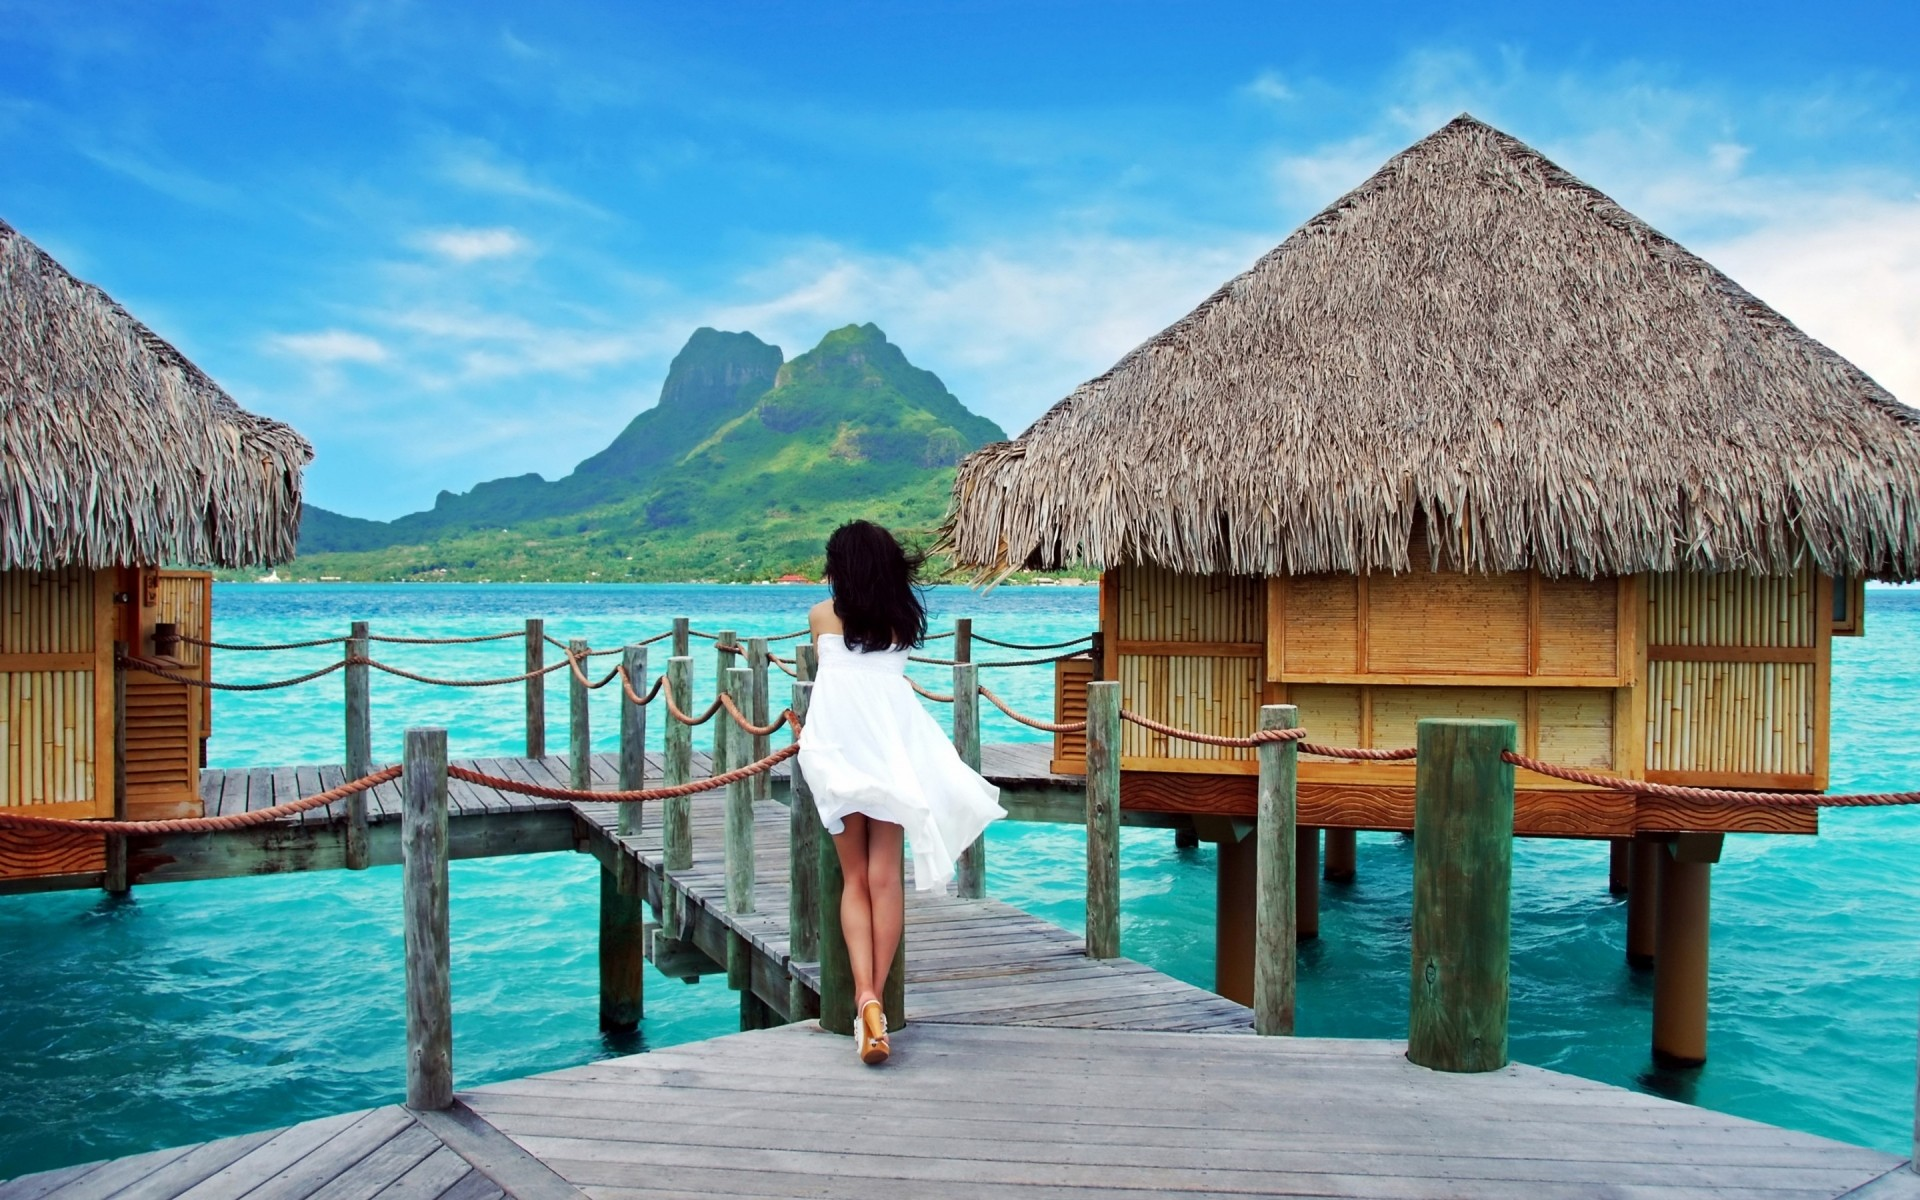 landscapes hut bungalow resort water travel vacation tropical leisure ocean summer sea beach island exotic wooden hotel seashore wood idyllic house bungalows landscape